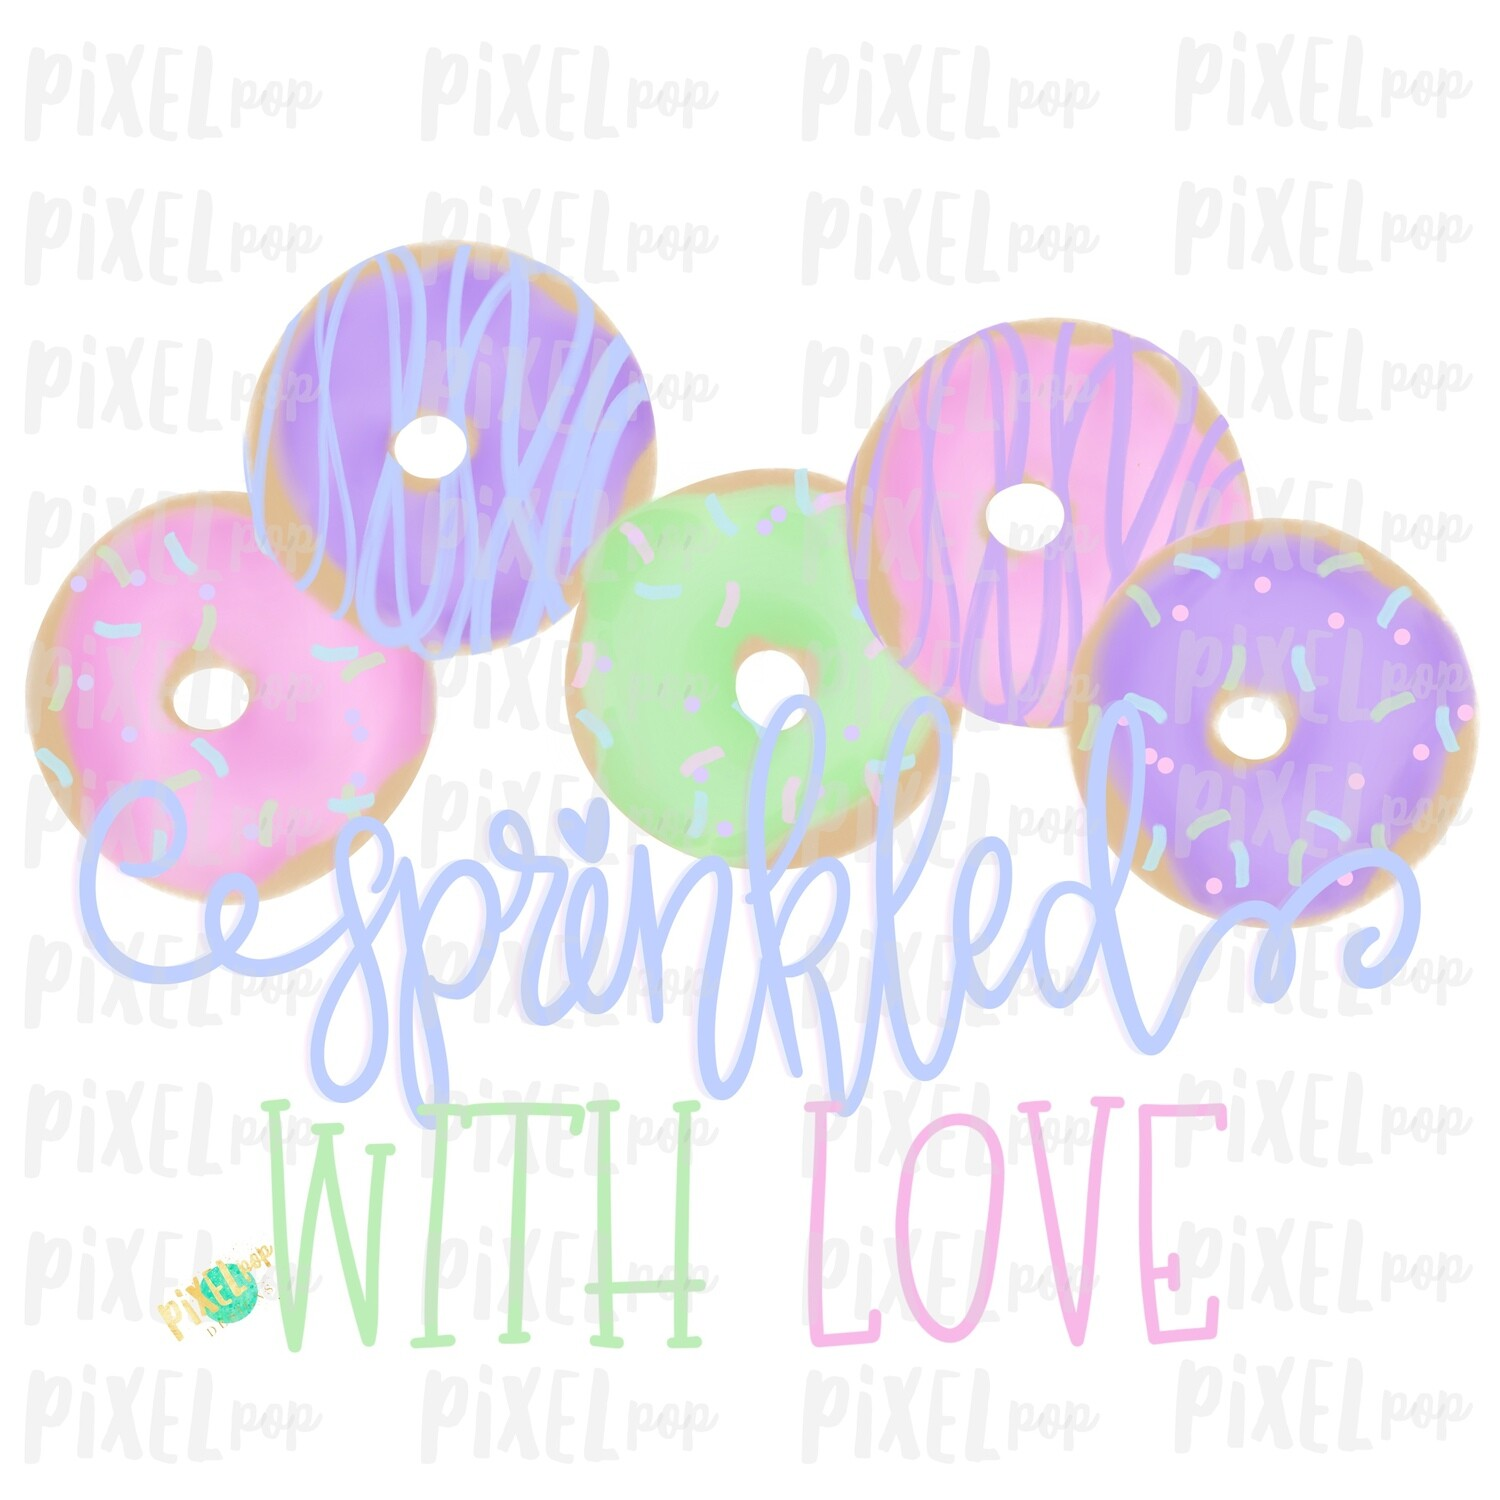 Sprinkled with Love Donuts Watercolor Sublimation Design PNG | Hand Drawn PNG | Sublimation | Digital Download | Printable Art | Clip Art